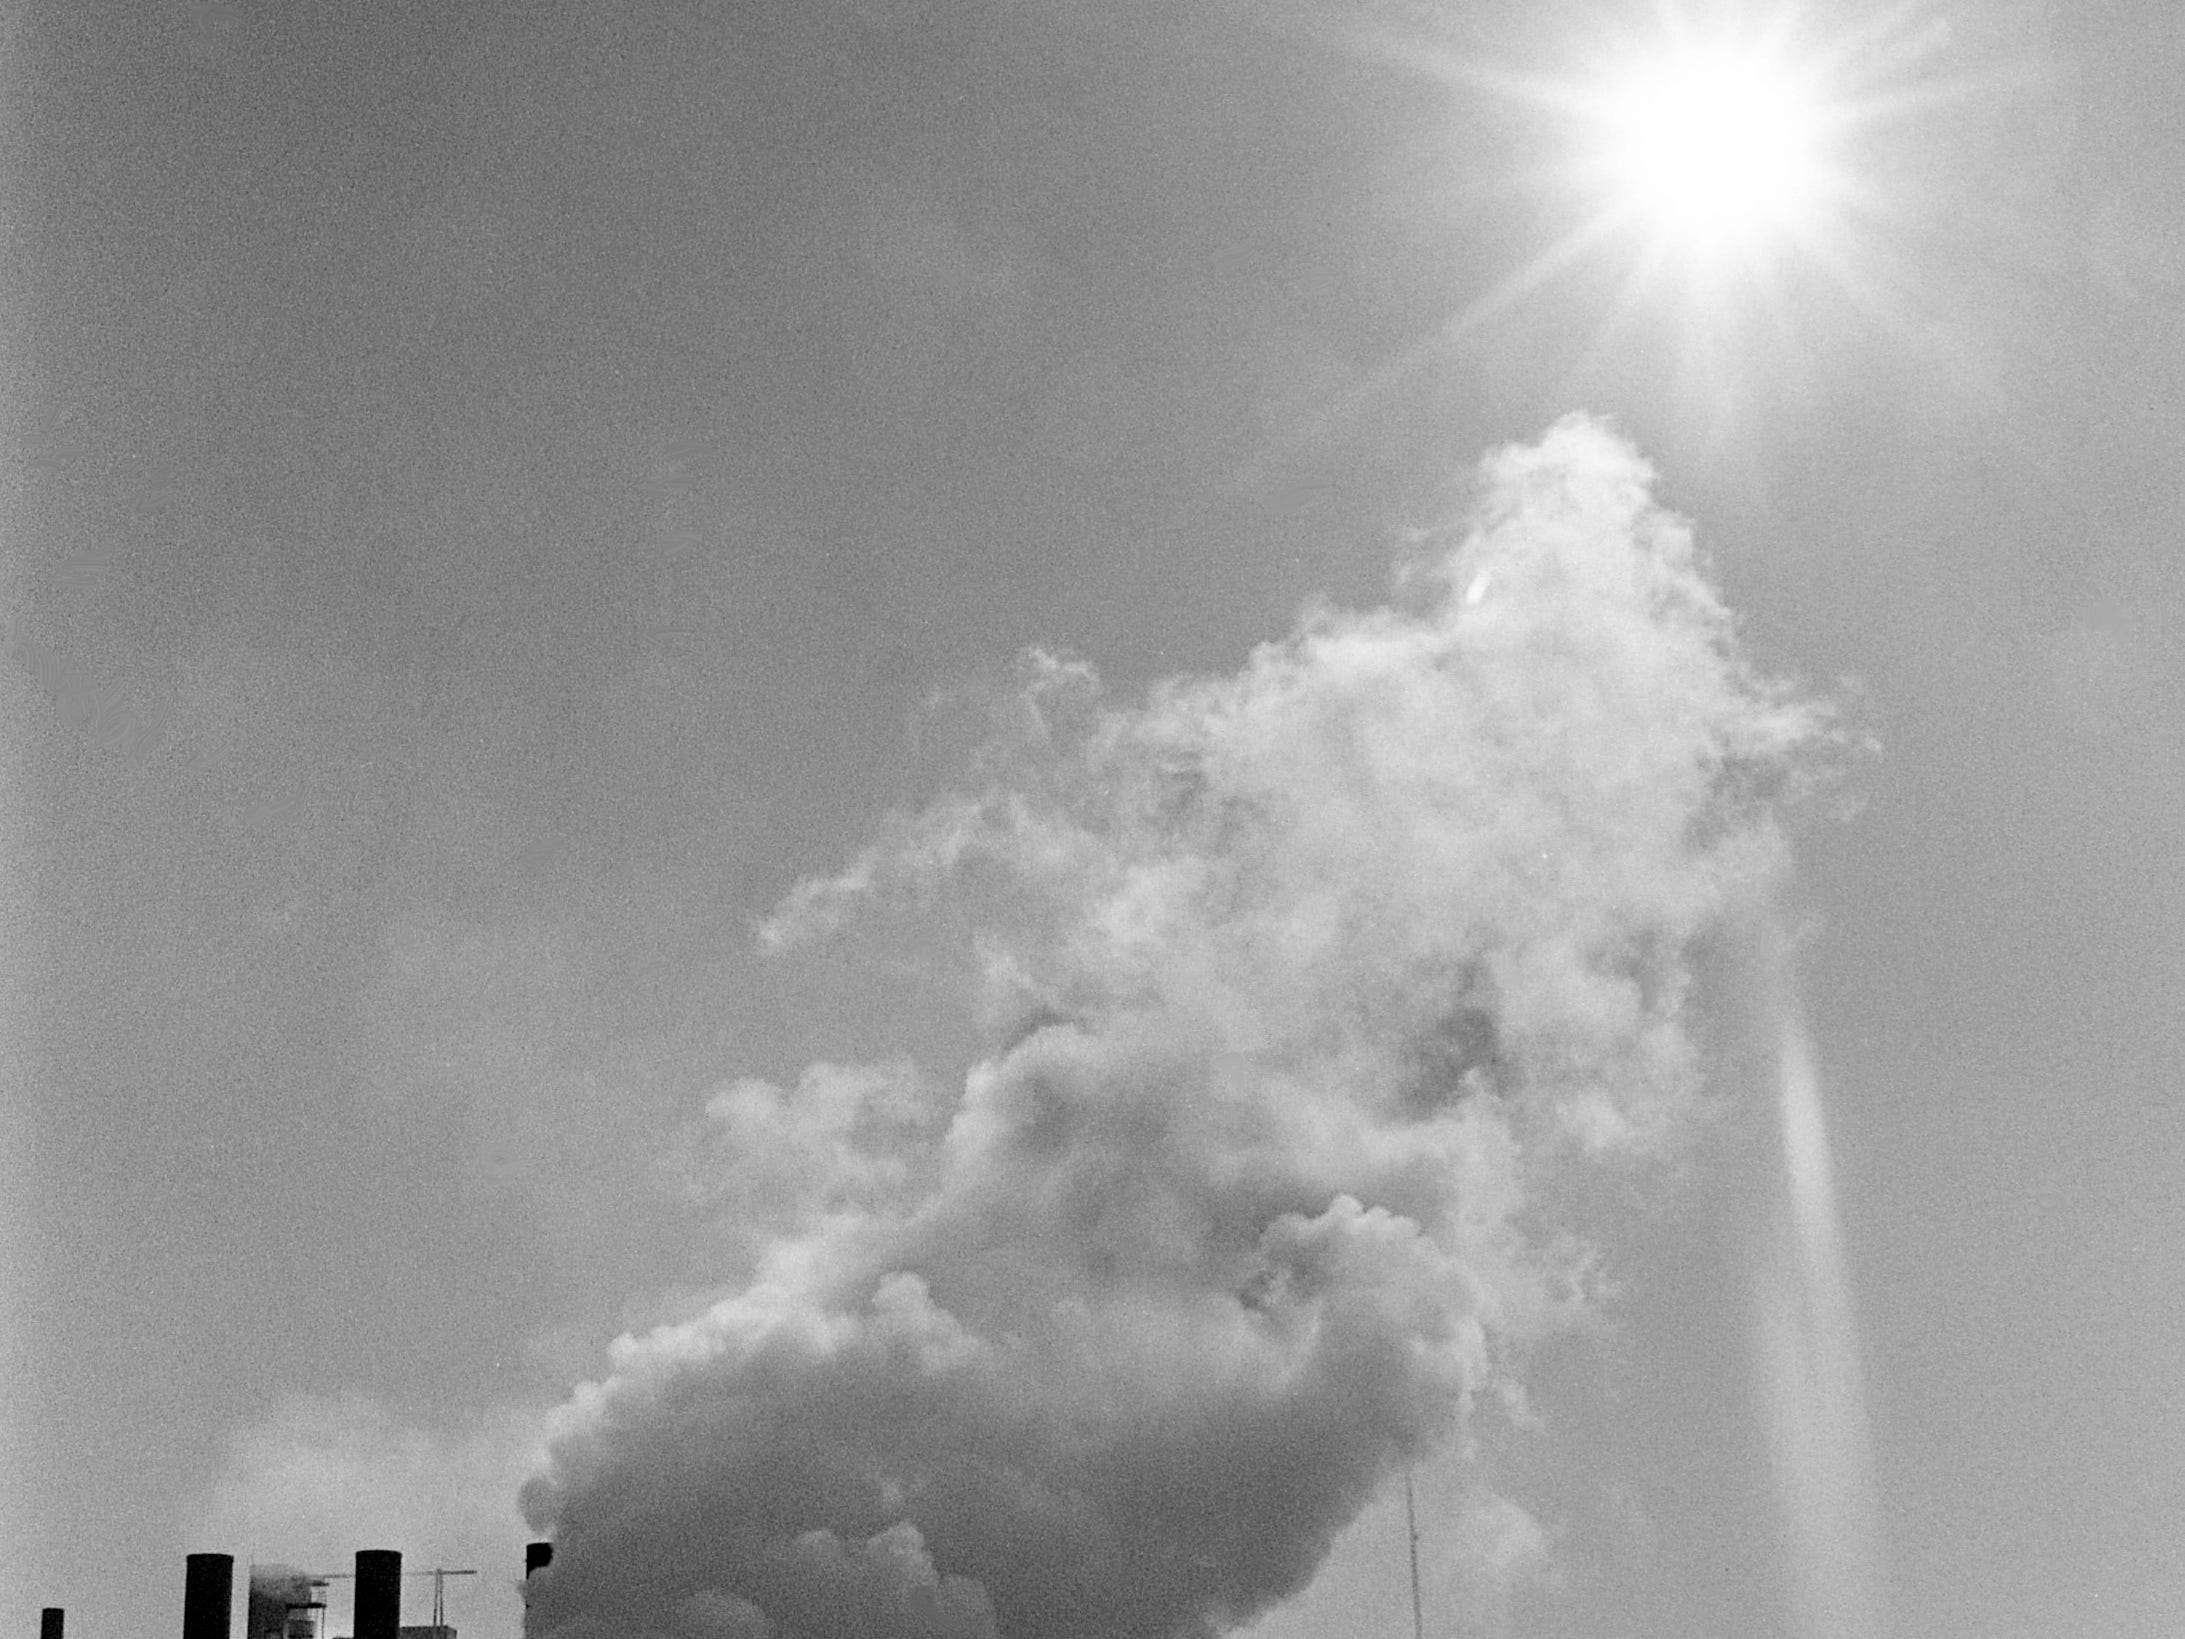 Smoke and steam from the Nashville Thermal Transfer Plant billow through crisp winter air toward the sun Feb. 9, 1989. A hearing is slated March 9 before the Metro Board of Health on a proposal to build a second thermal plant in Cockrill Bend.